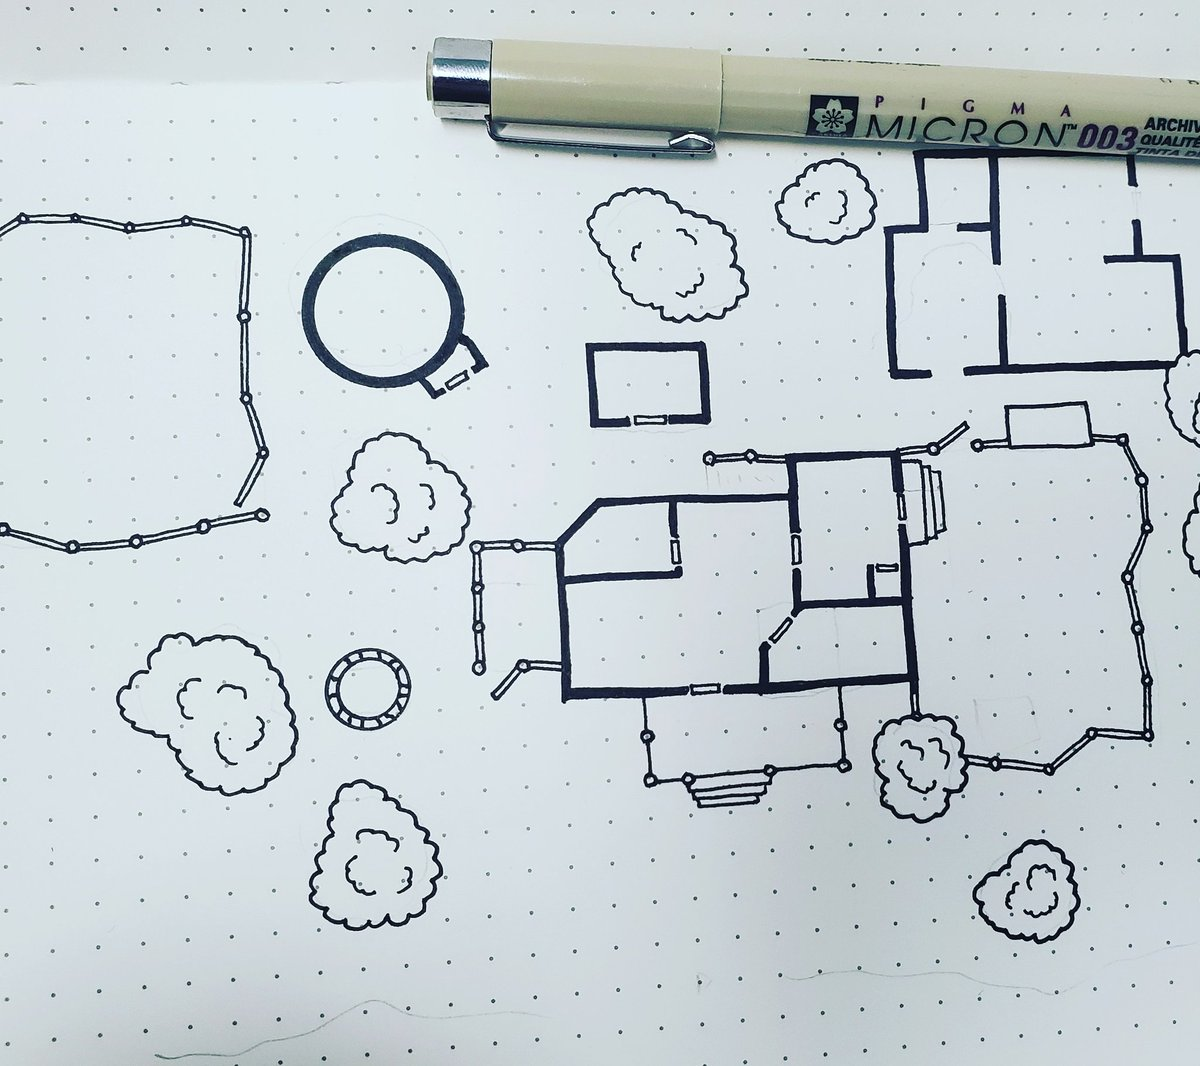 Its been a while since I've drawn a #dnd #map. So here is a small farm house with a tower and a workshop.  #dndmaps #cartography #micron #micronpens #dnd5e #maps #battlemaps #dndmappic.twitter.com/Wtwf9oxaWQ